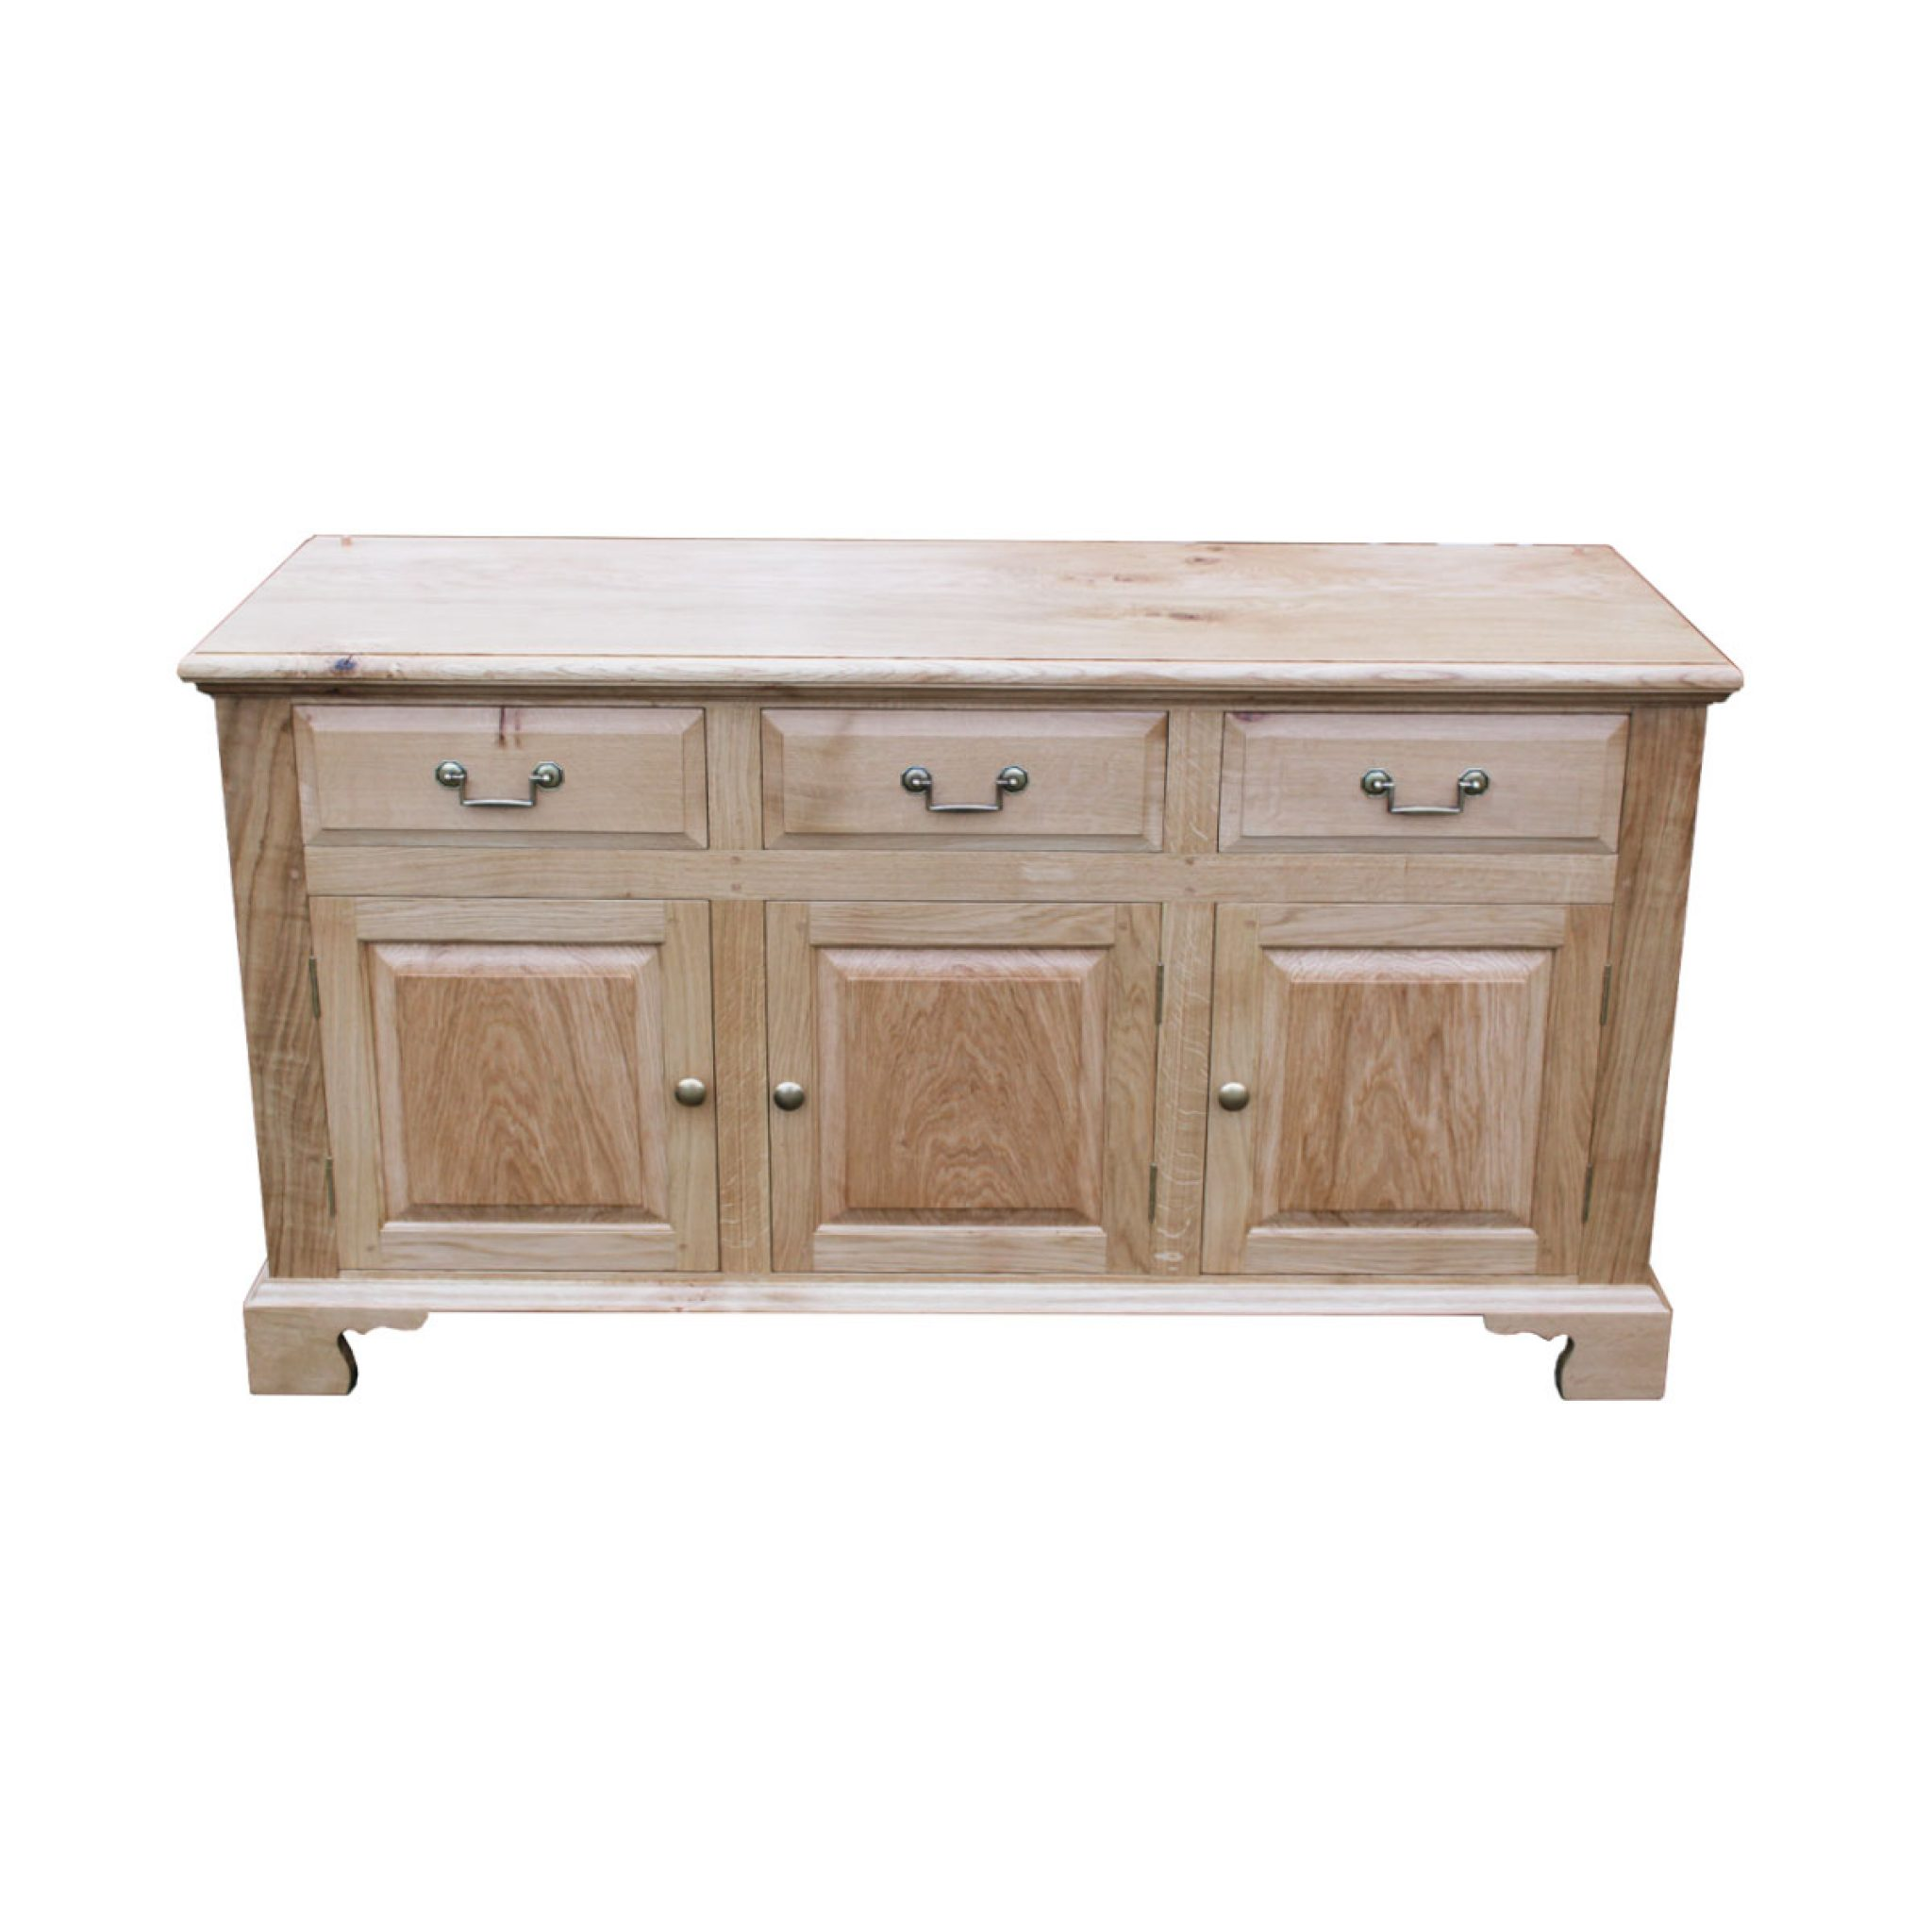 Handmade Oak Furniture Burry Port